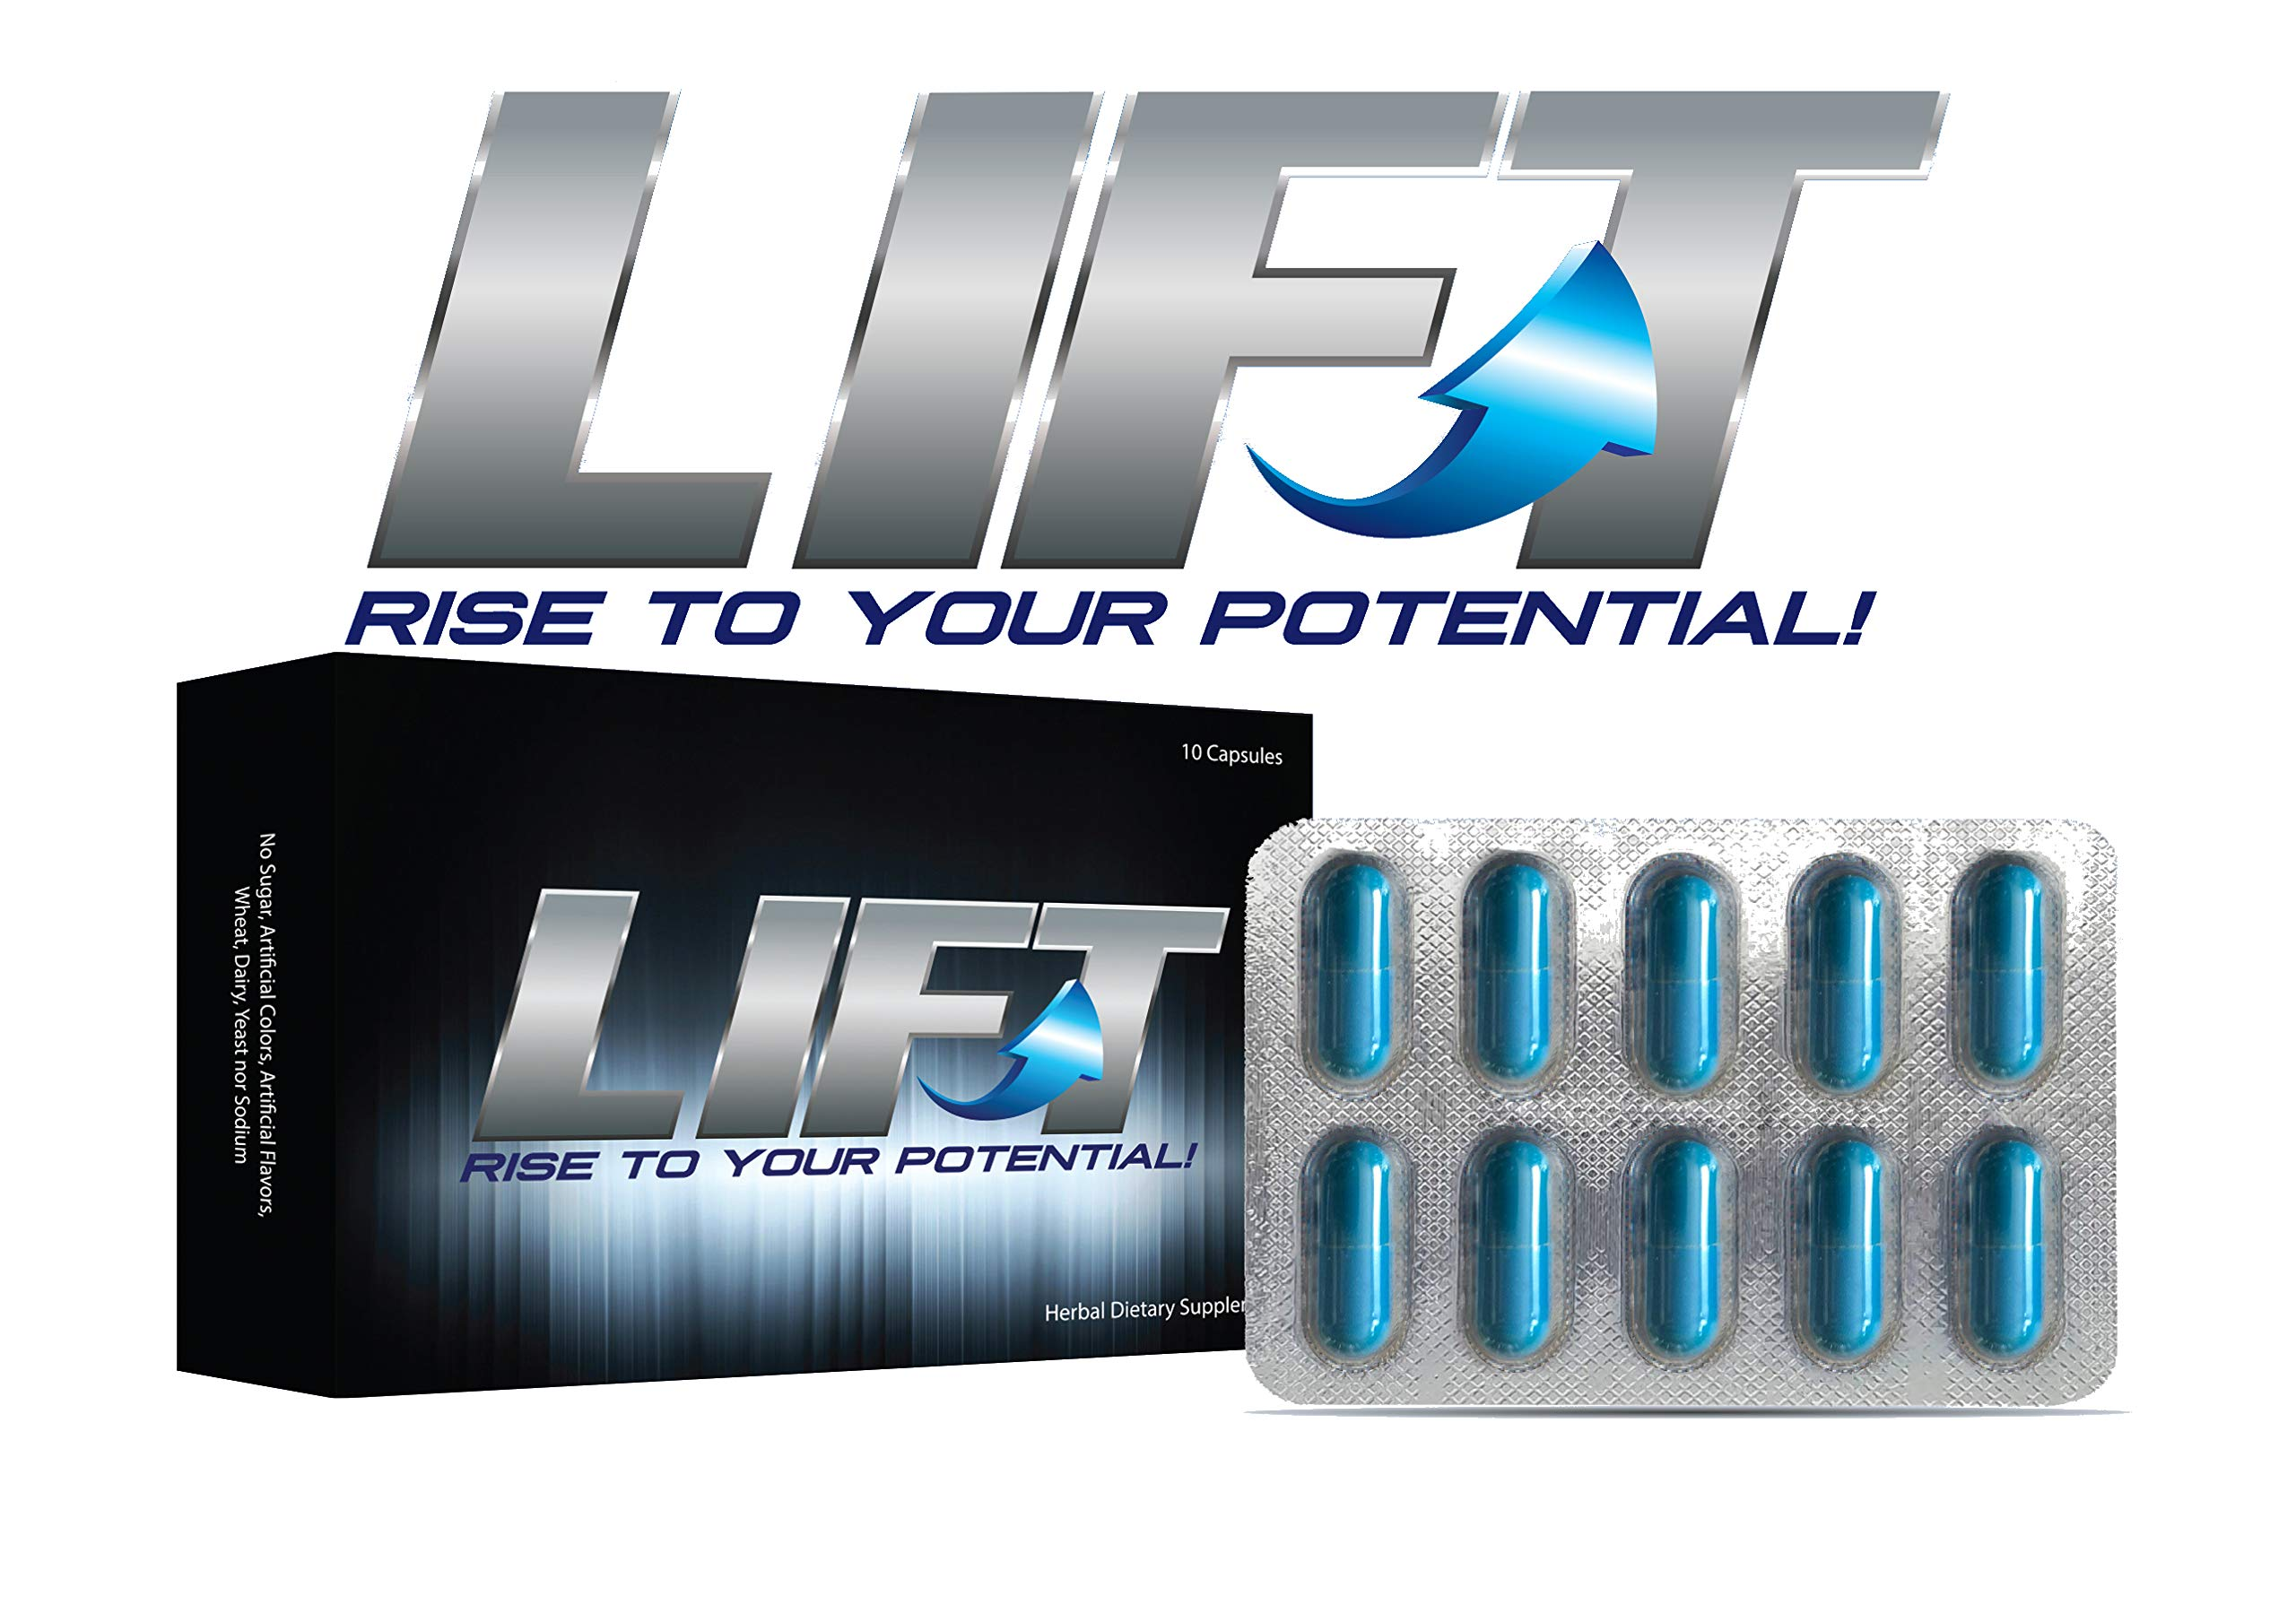 LIFT ~ Rise to Your Potential! Amplify Your Recovery, Endurance and Energy Naturally!